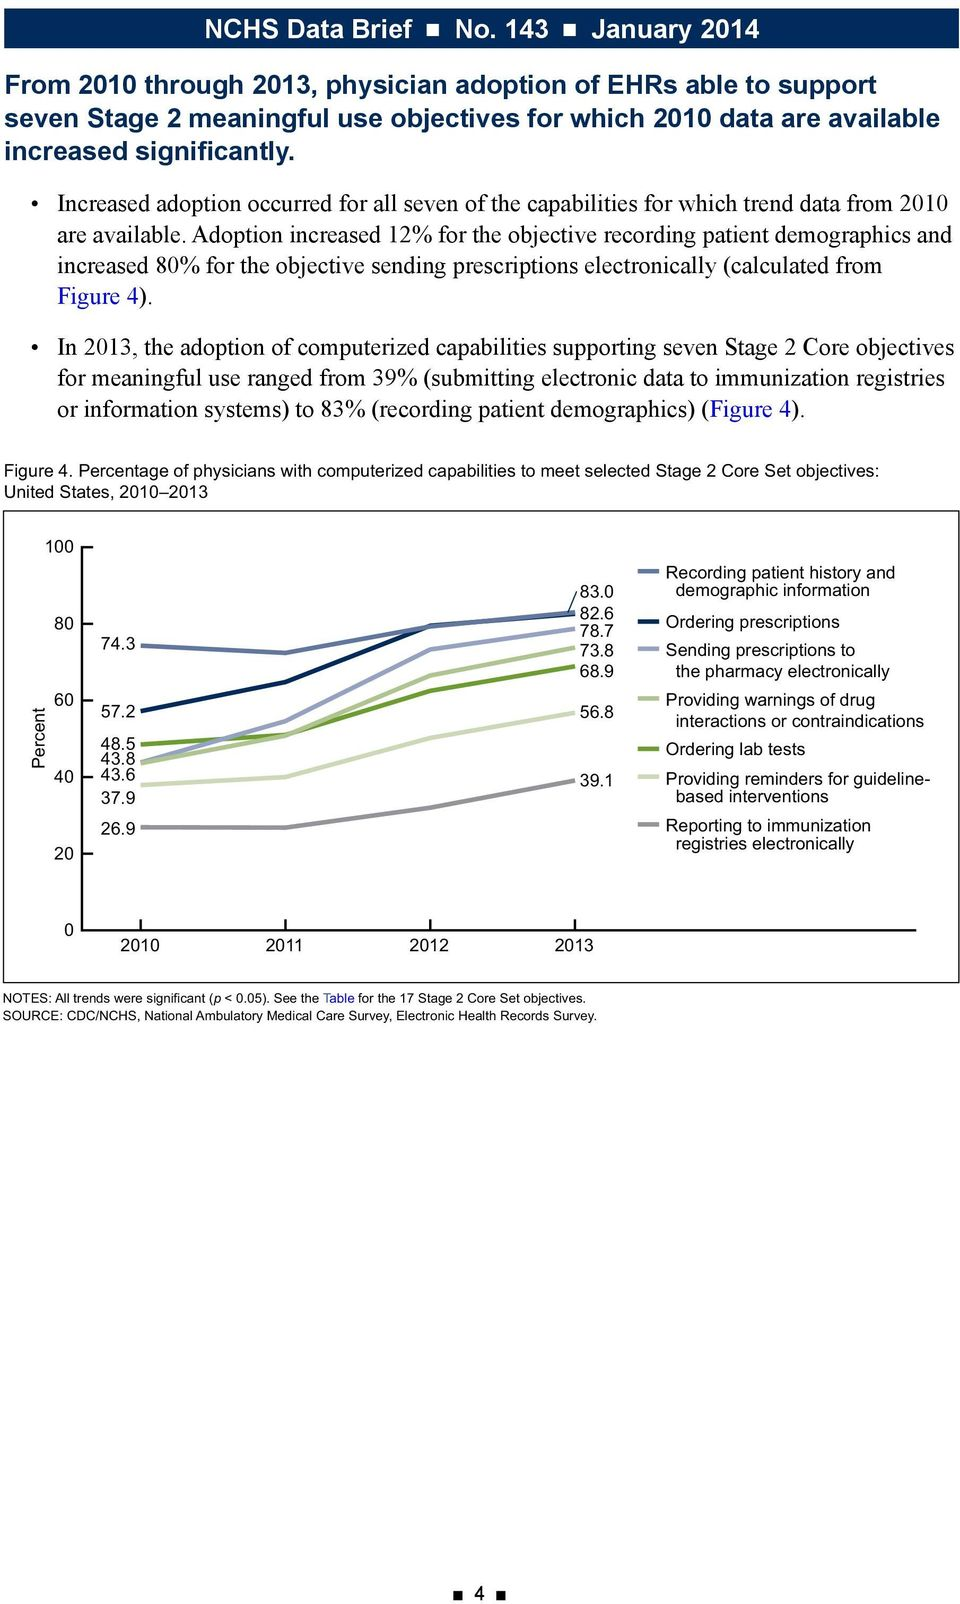 Adoption increased 12% for the objective recording patient demographics and increased 80% for the objective sending prescriptions electronically (calculated from Figure 4).